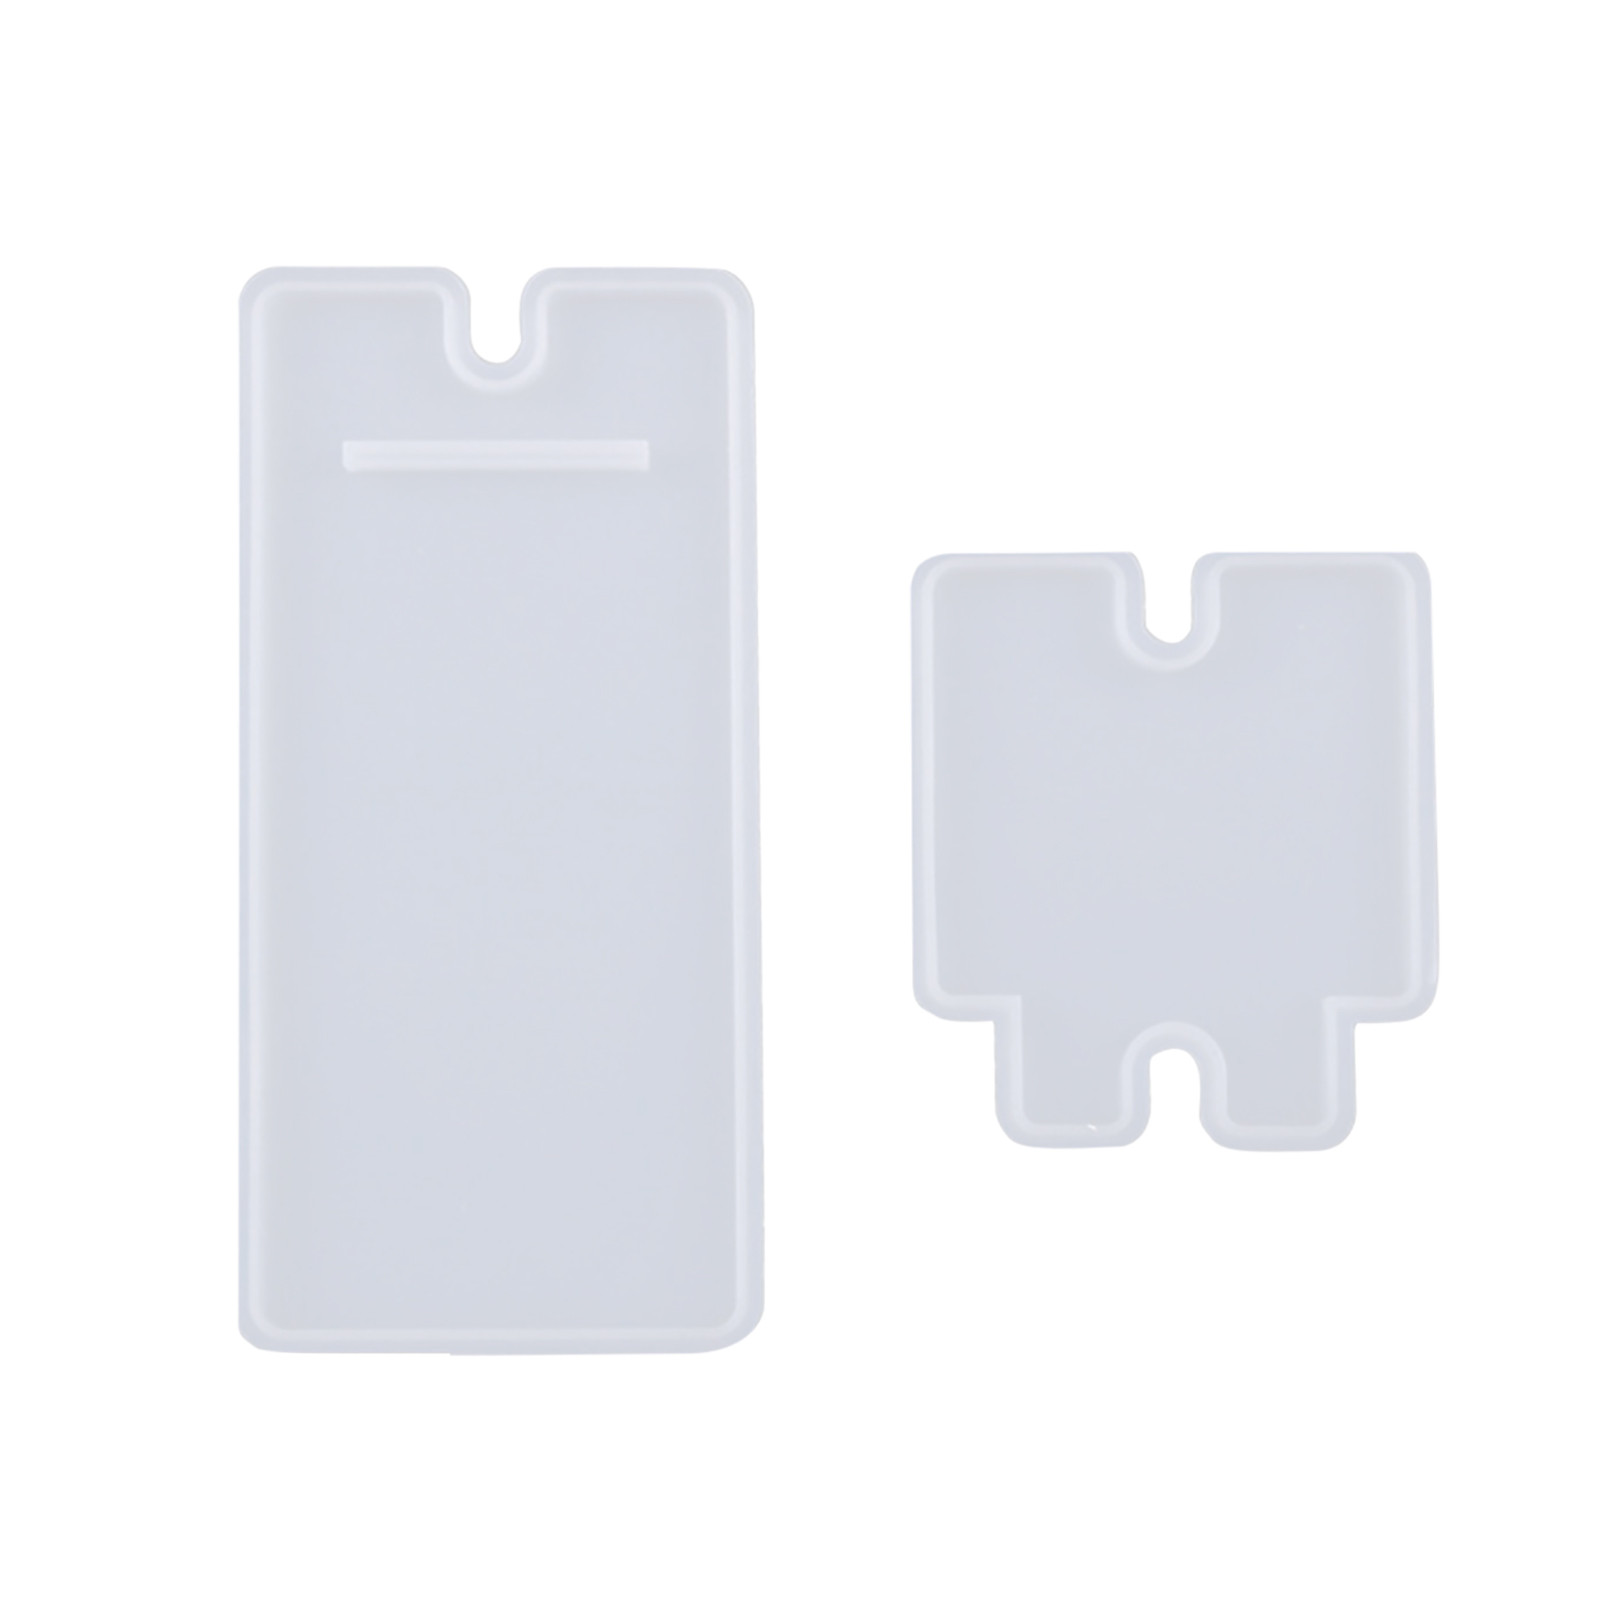 Silicone Mobile Phone Stand Holder Casting Mold Resin Epoxy Mould Craft Tool DIY